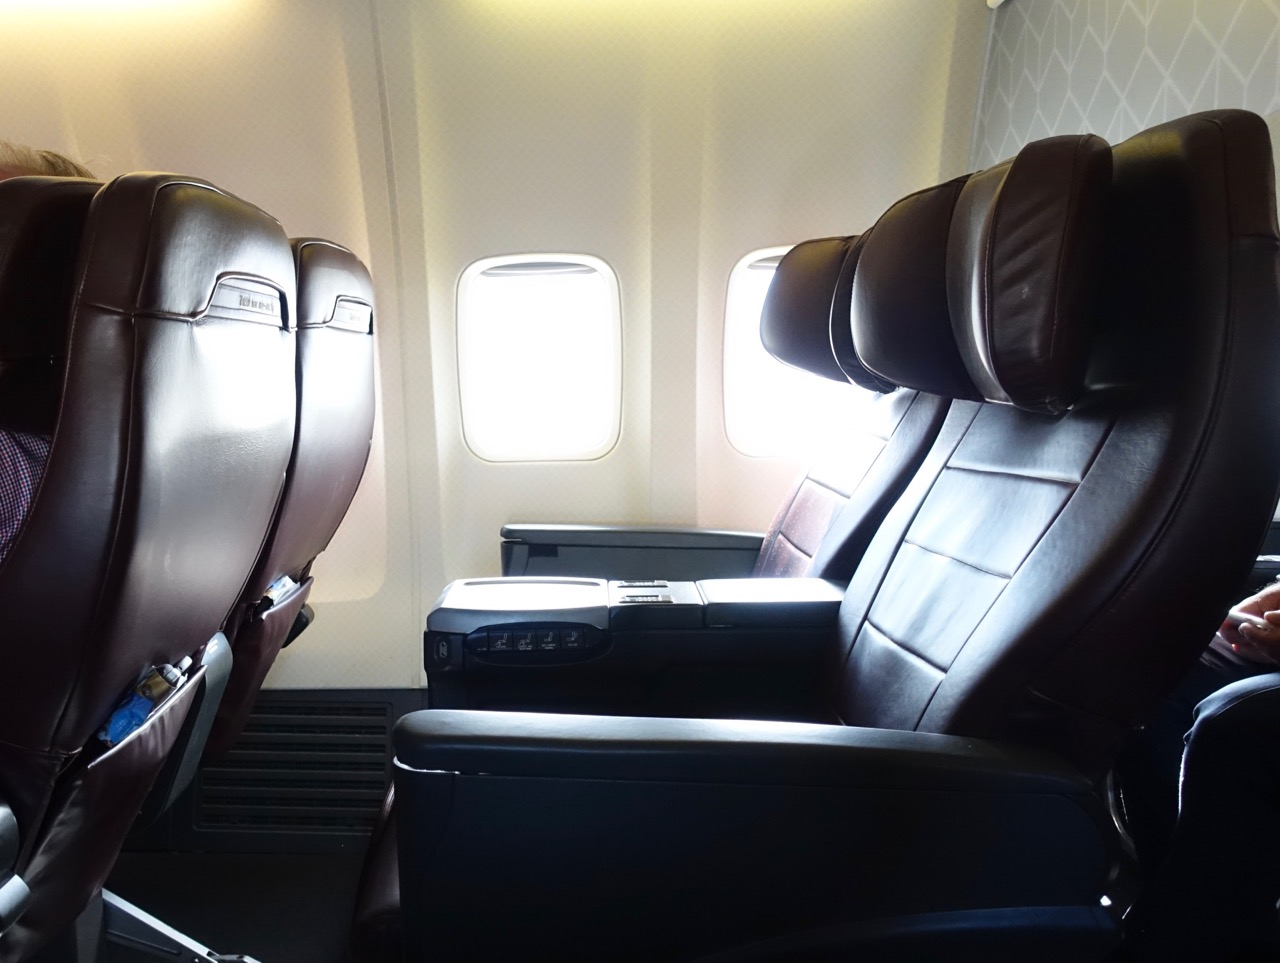 Qantas 737 Domestic Business Class